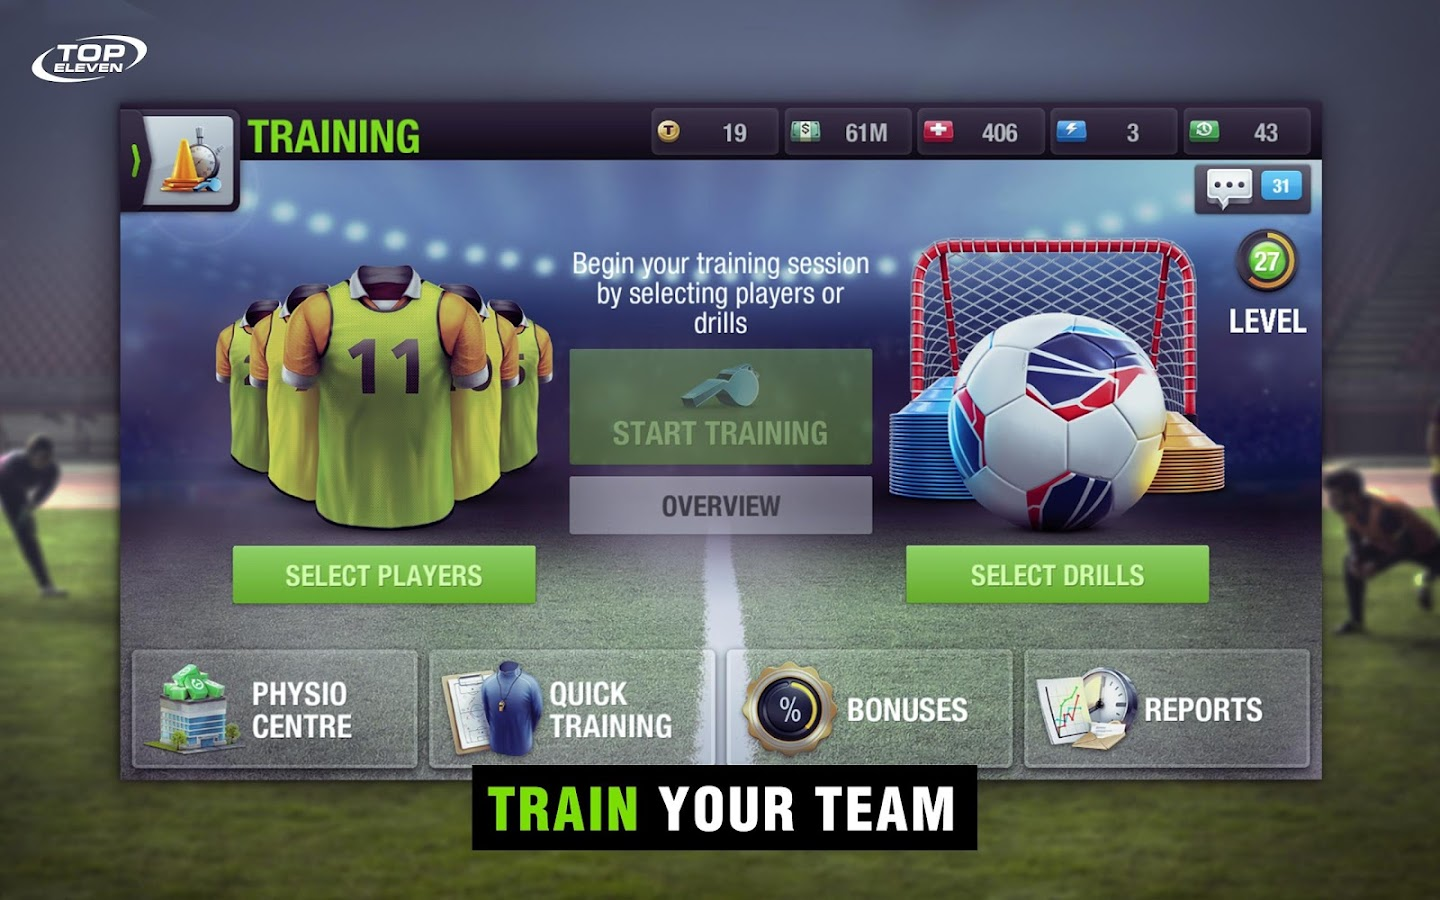 Top Eleven Be a Soccer Manager Screenshot 17